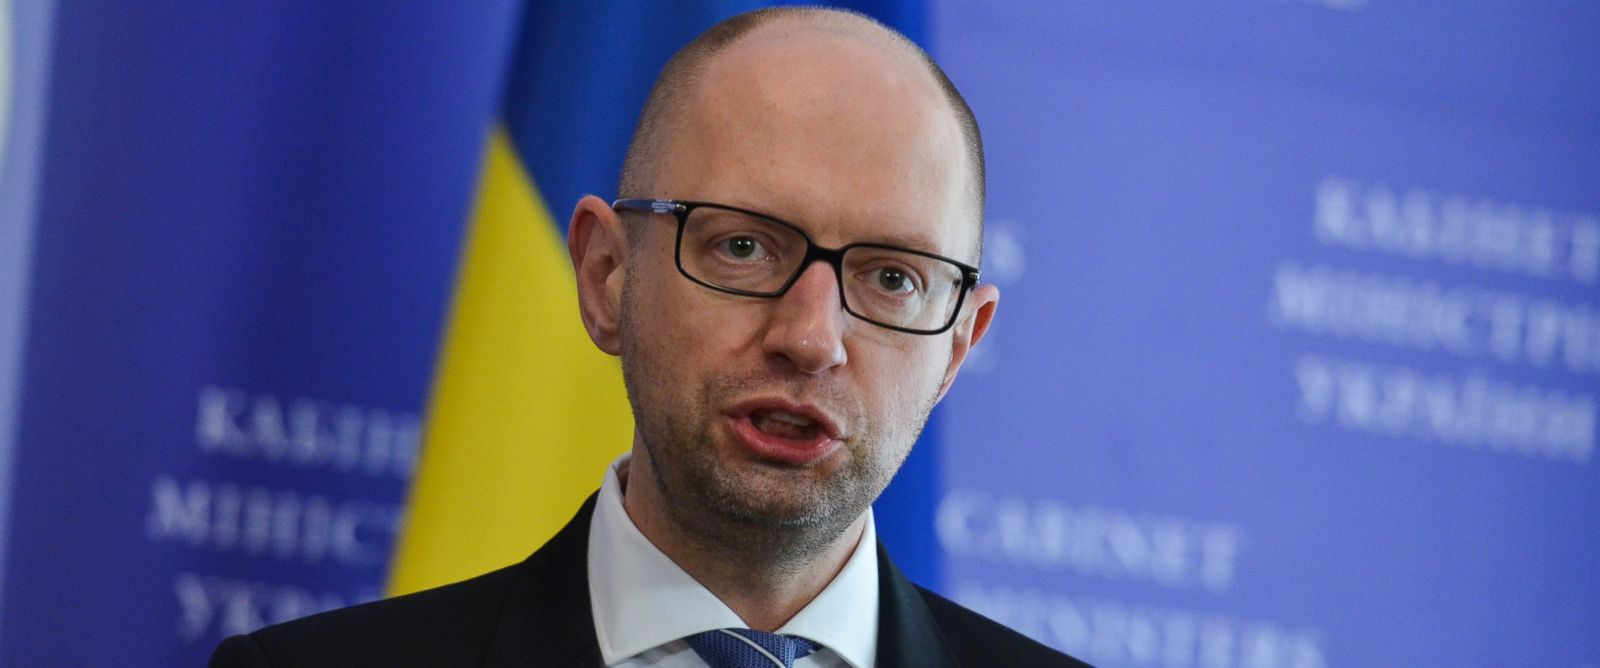 PHOTO: Prime Minister of Ukraine Arseniy Yatsenyuk is seen in Kiev, Ukraine, Feb. 15, 2016.